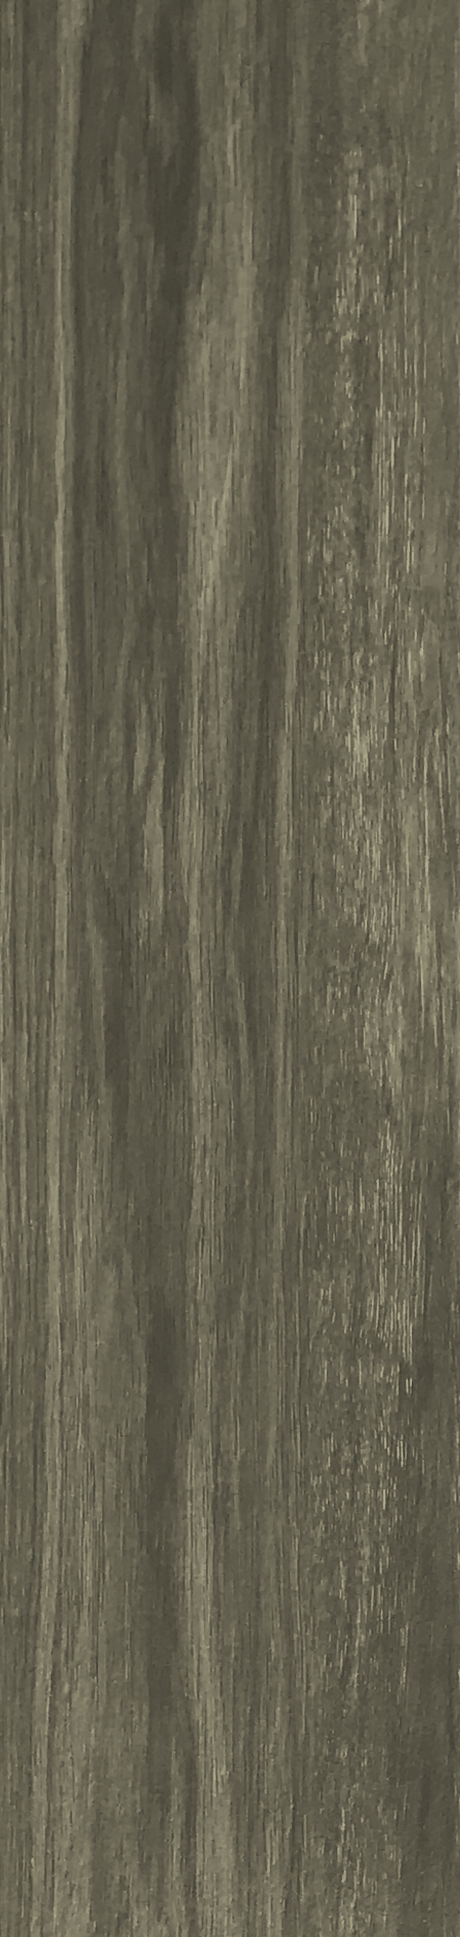 Alcora smokel 9x35 porcelain wood look tile